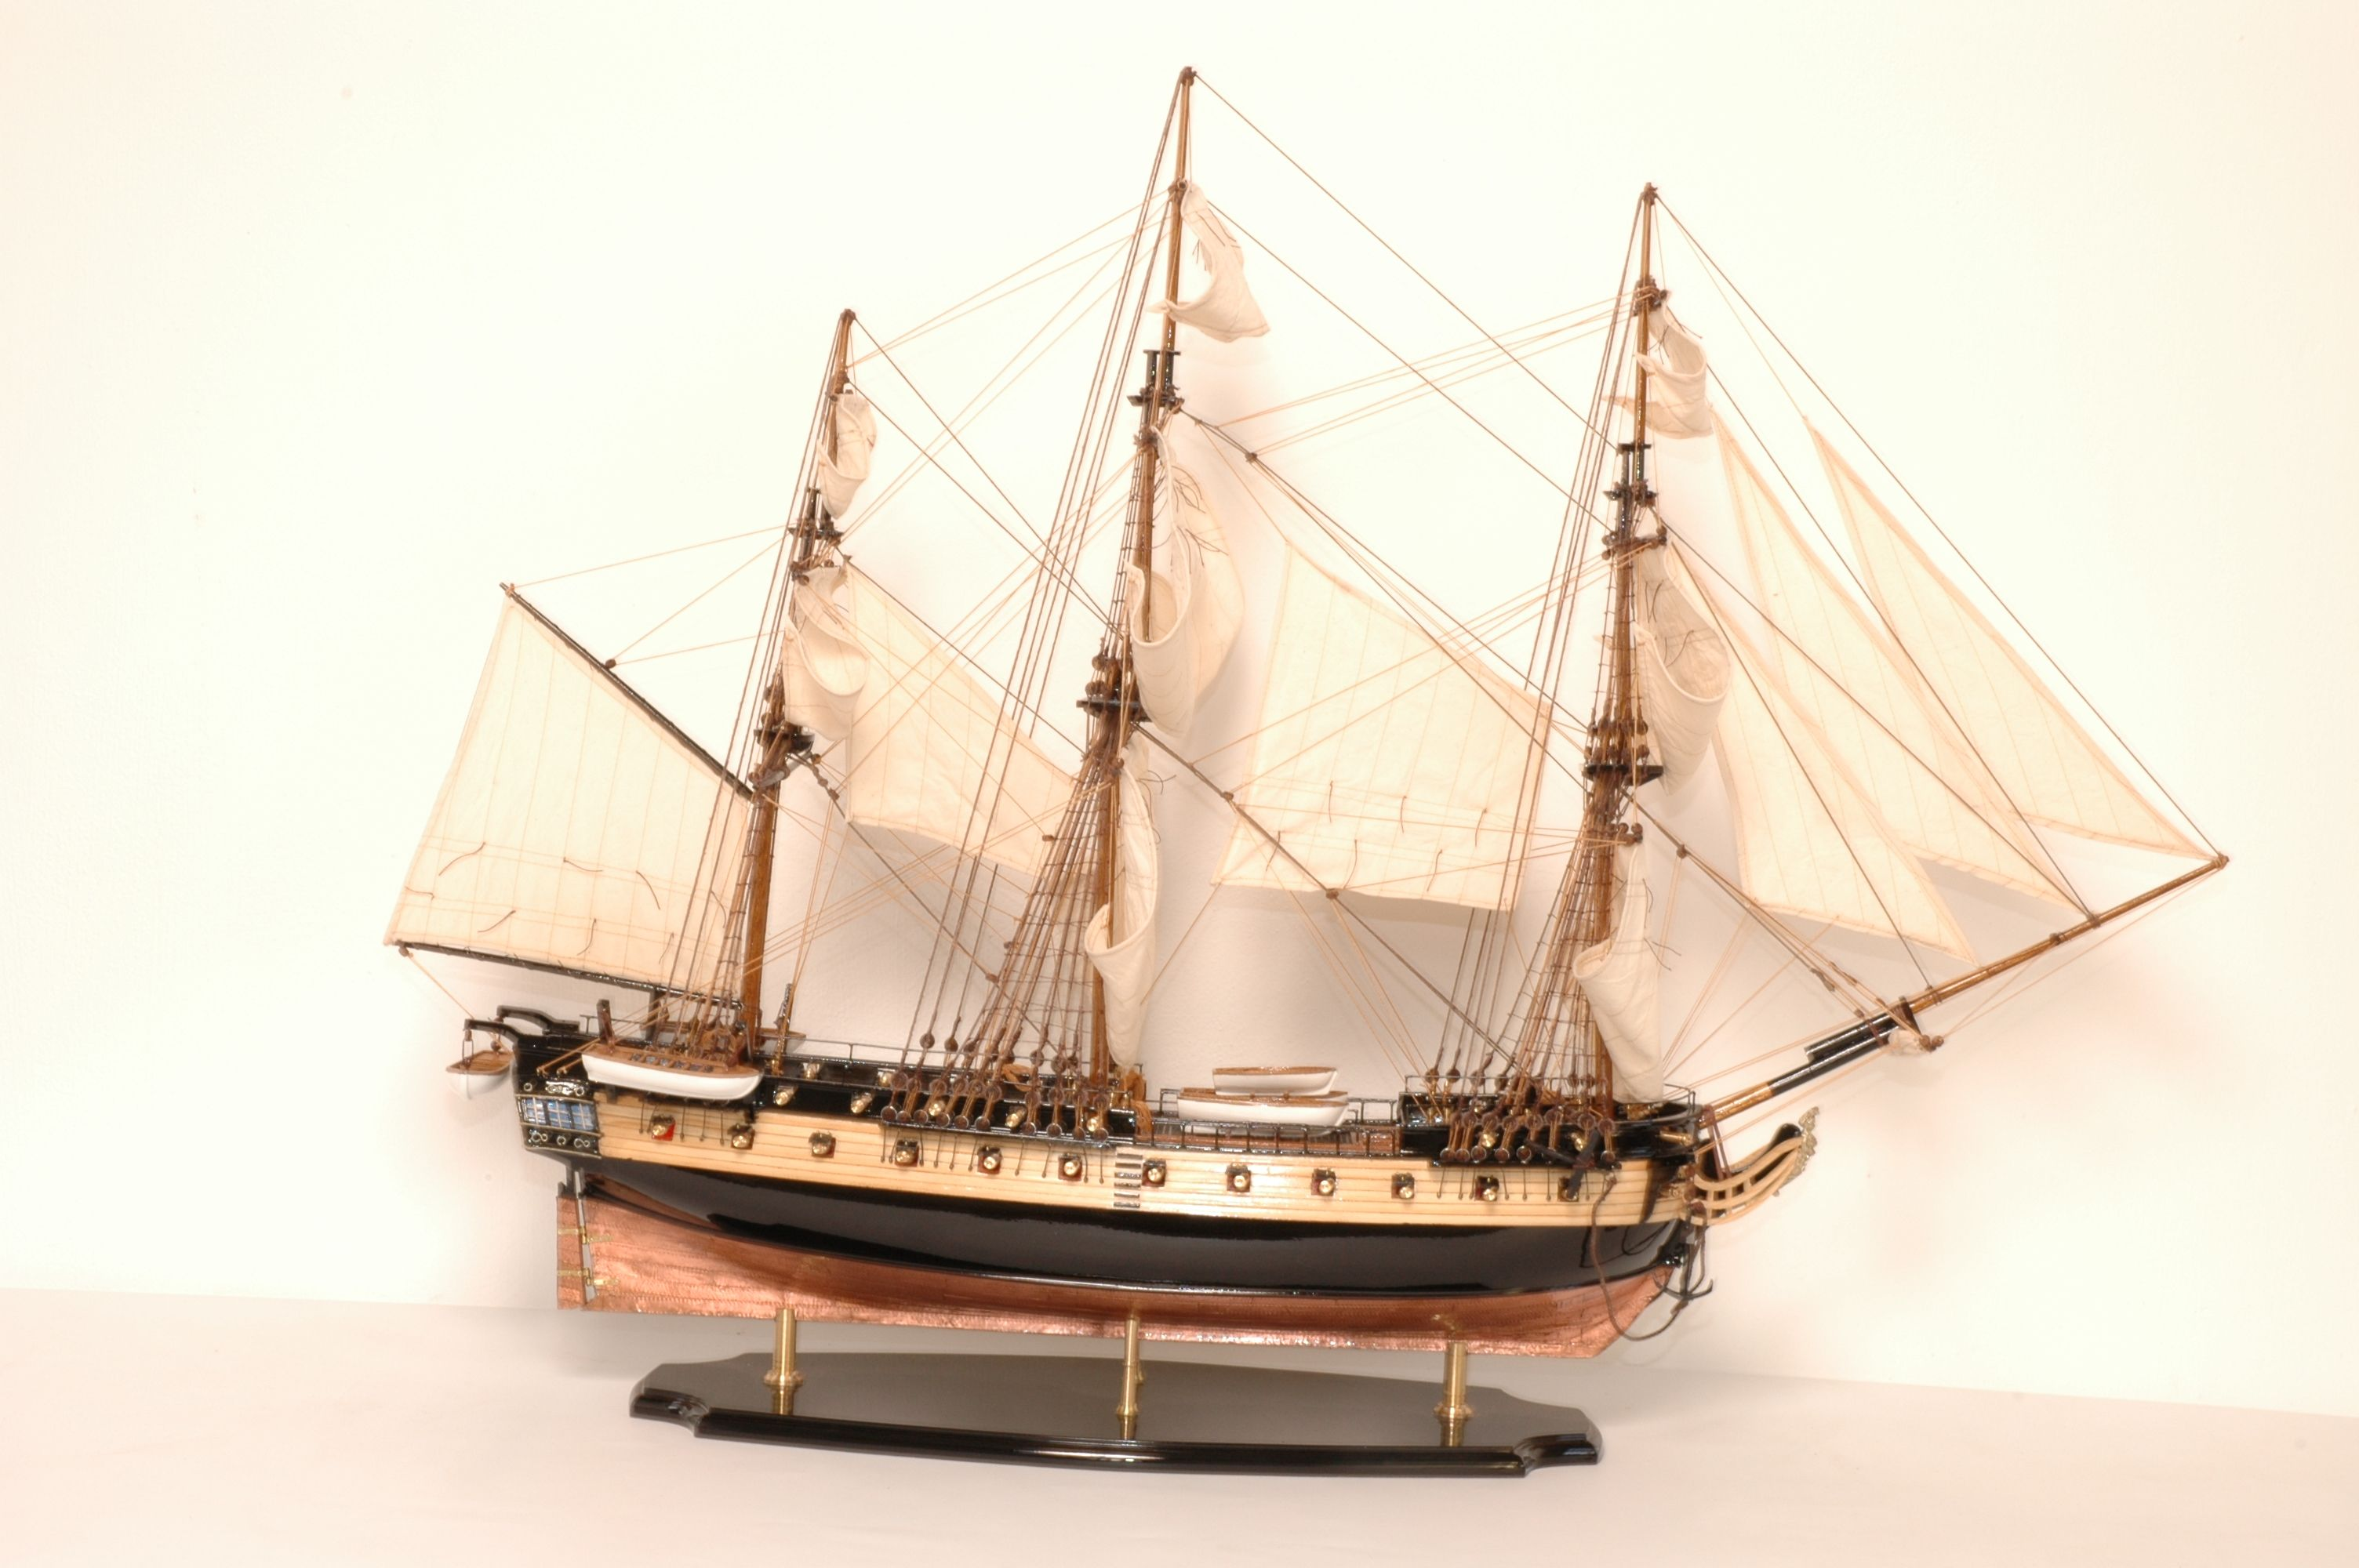 488-8352-HMS-Surprise-Model-Ship-Superior-Range